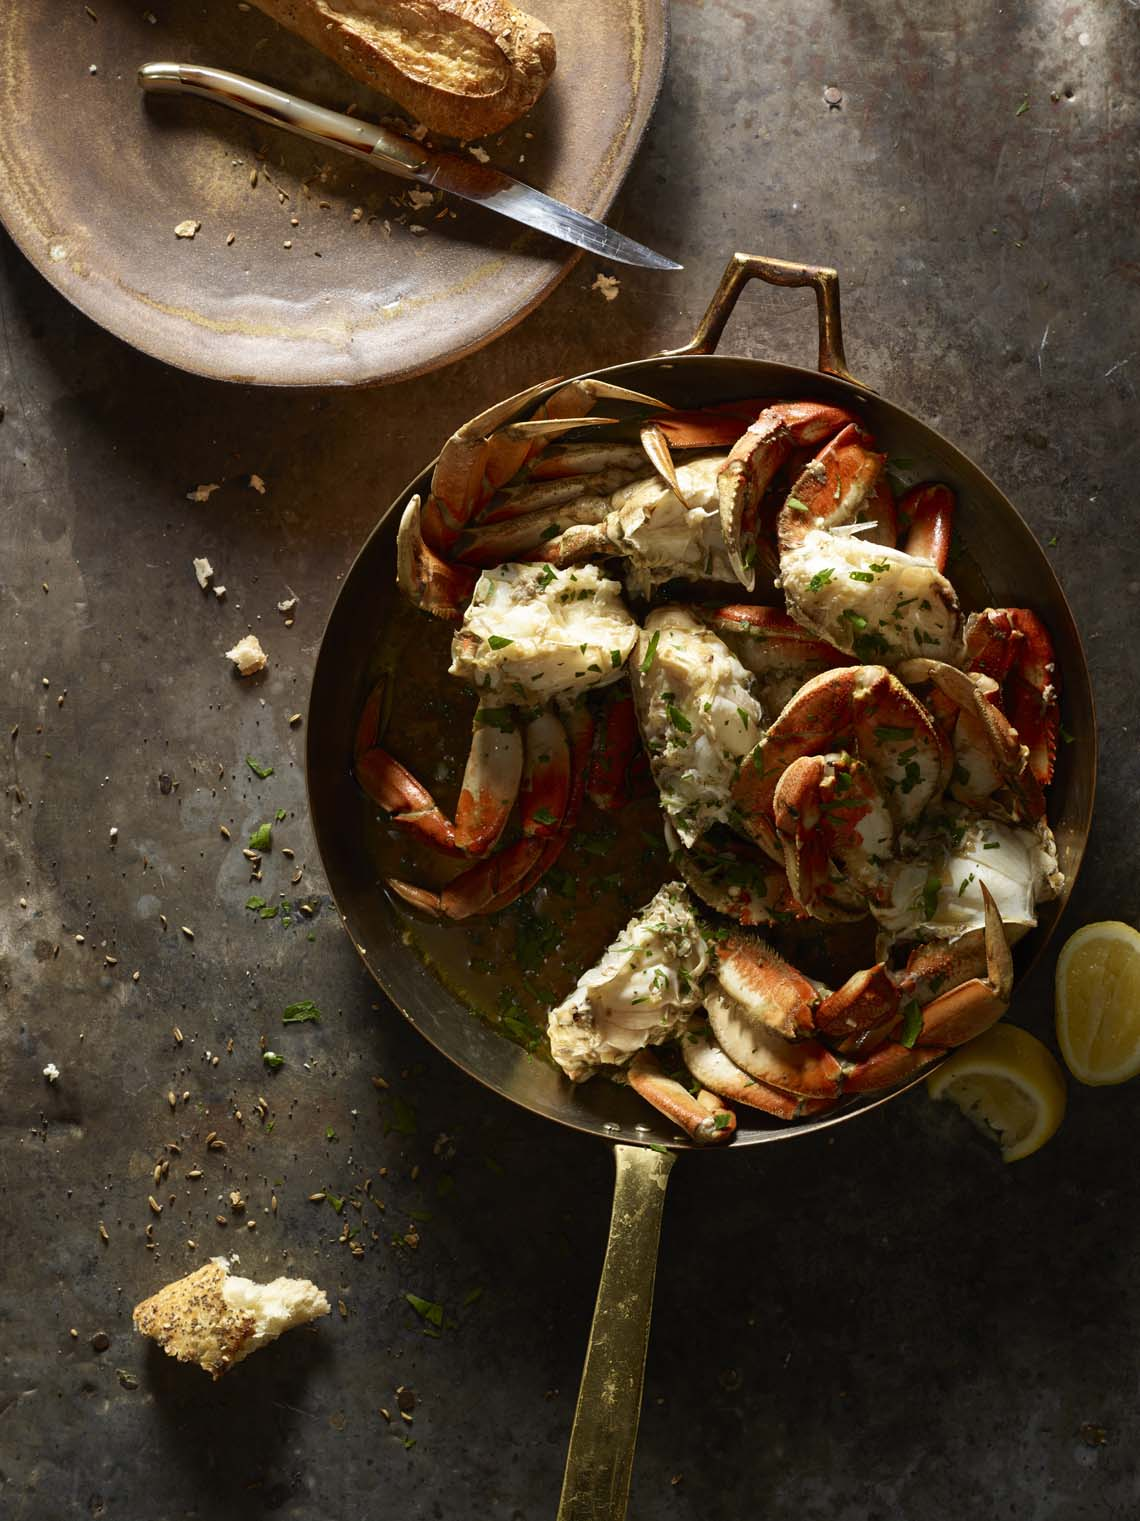 food stylist in San Francisco - Picture of Dungeness Crab with butter by Laurie Frankel Photography